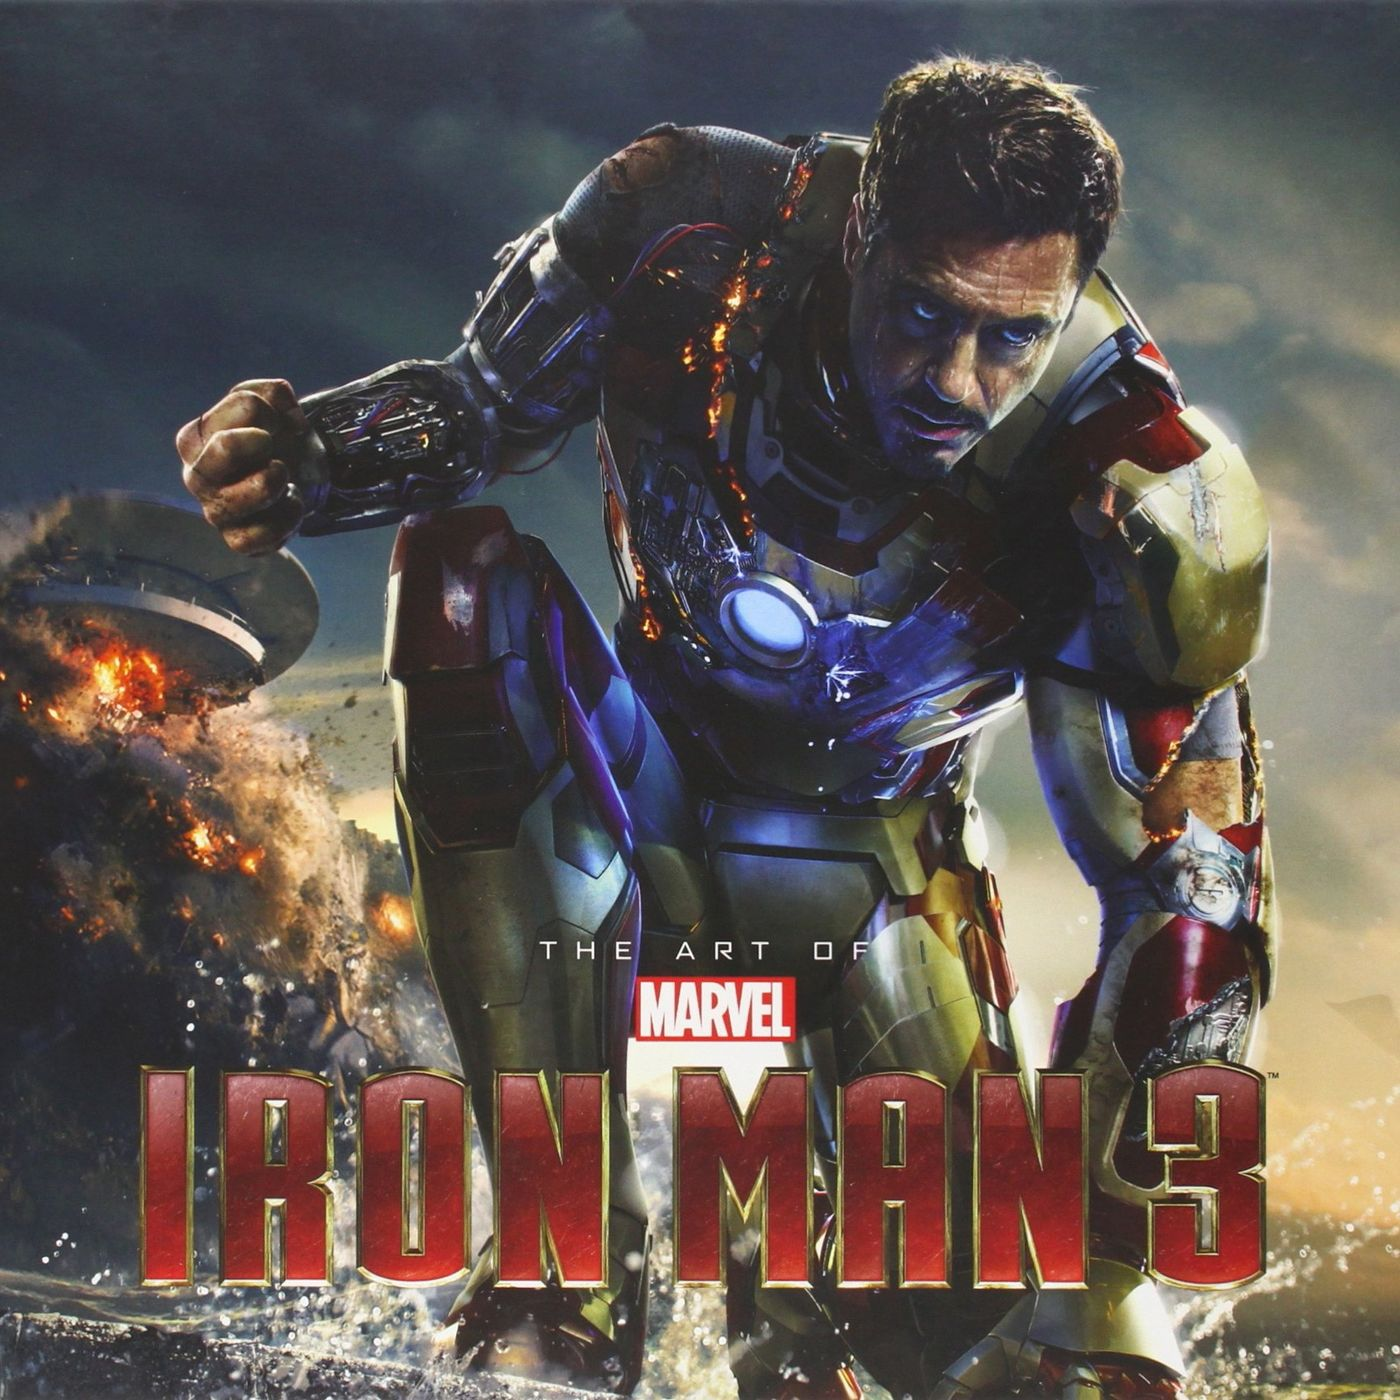 PODCAST CINEMA | critique du film IRON MAN 3 | CinéMaRadio